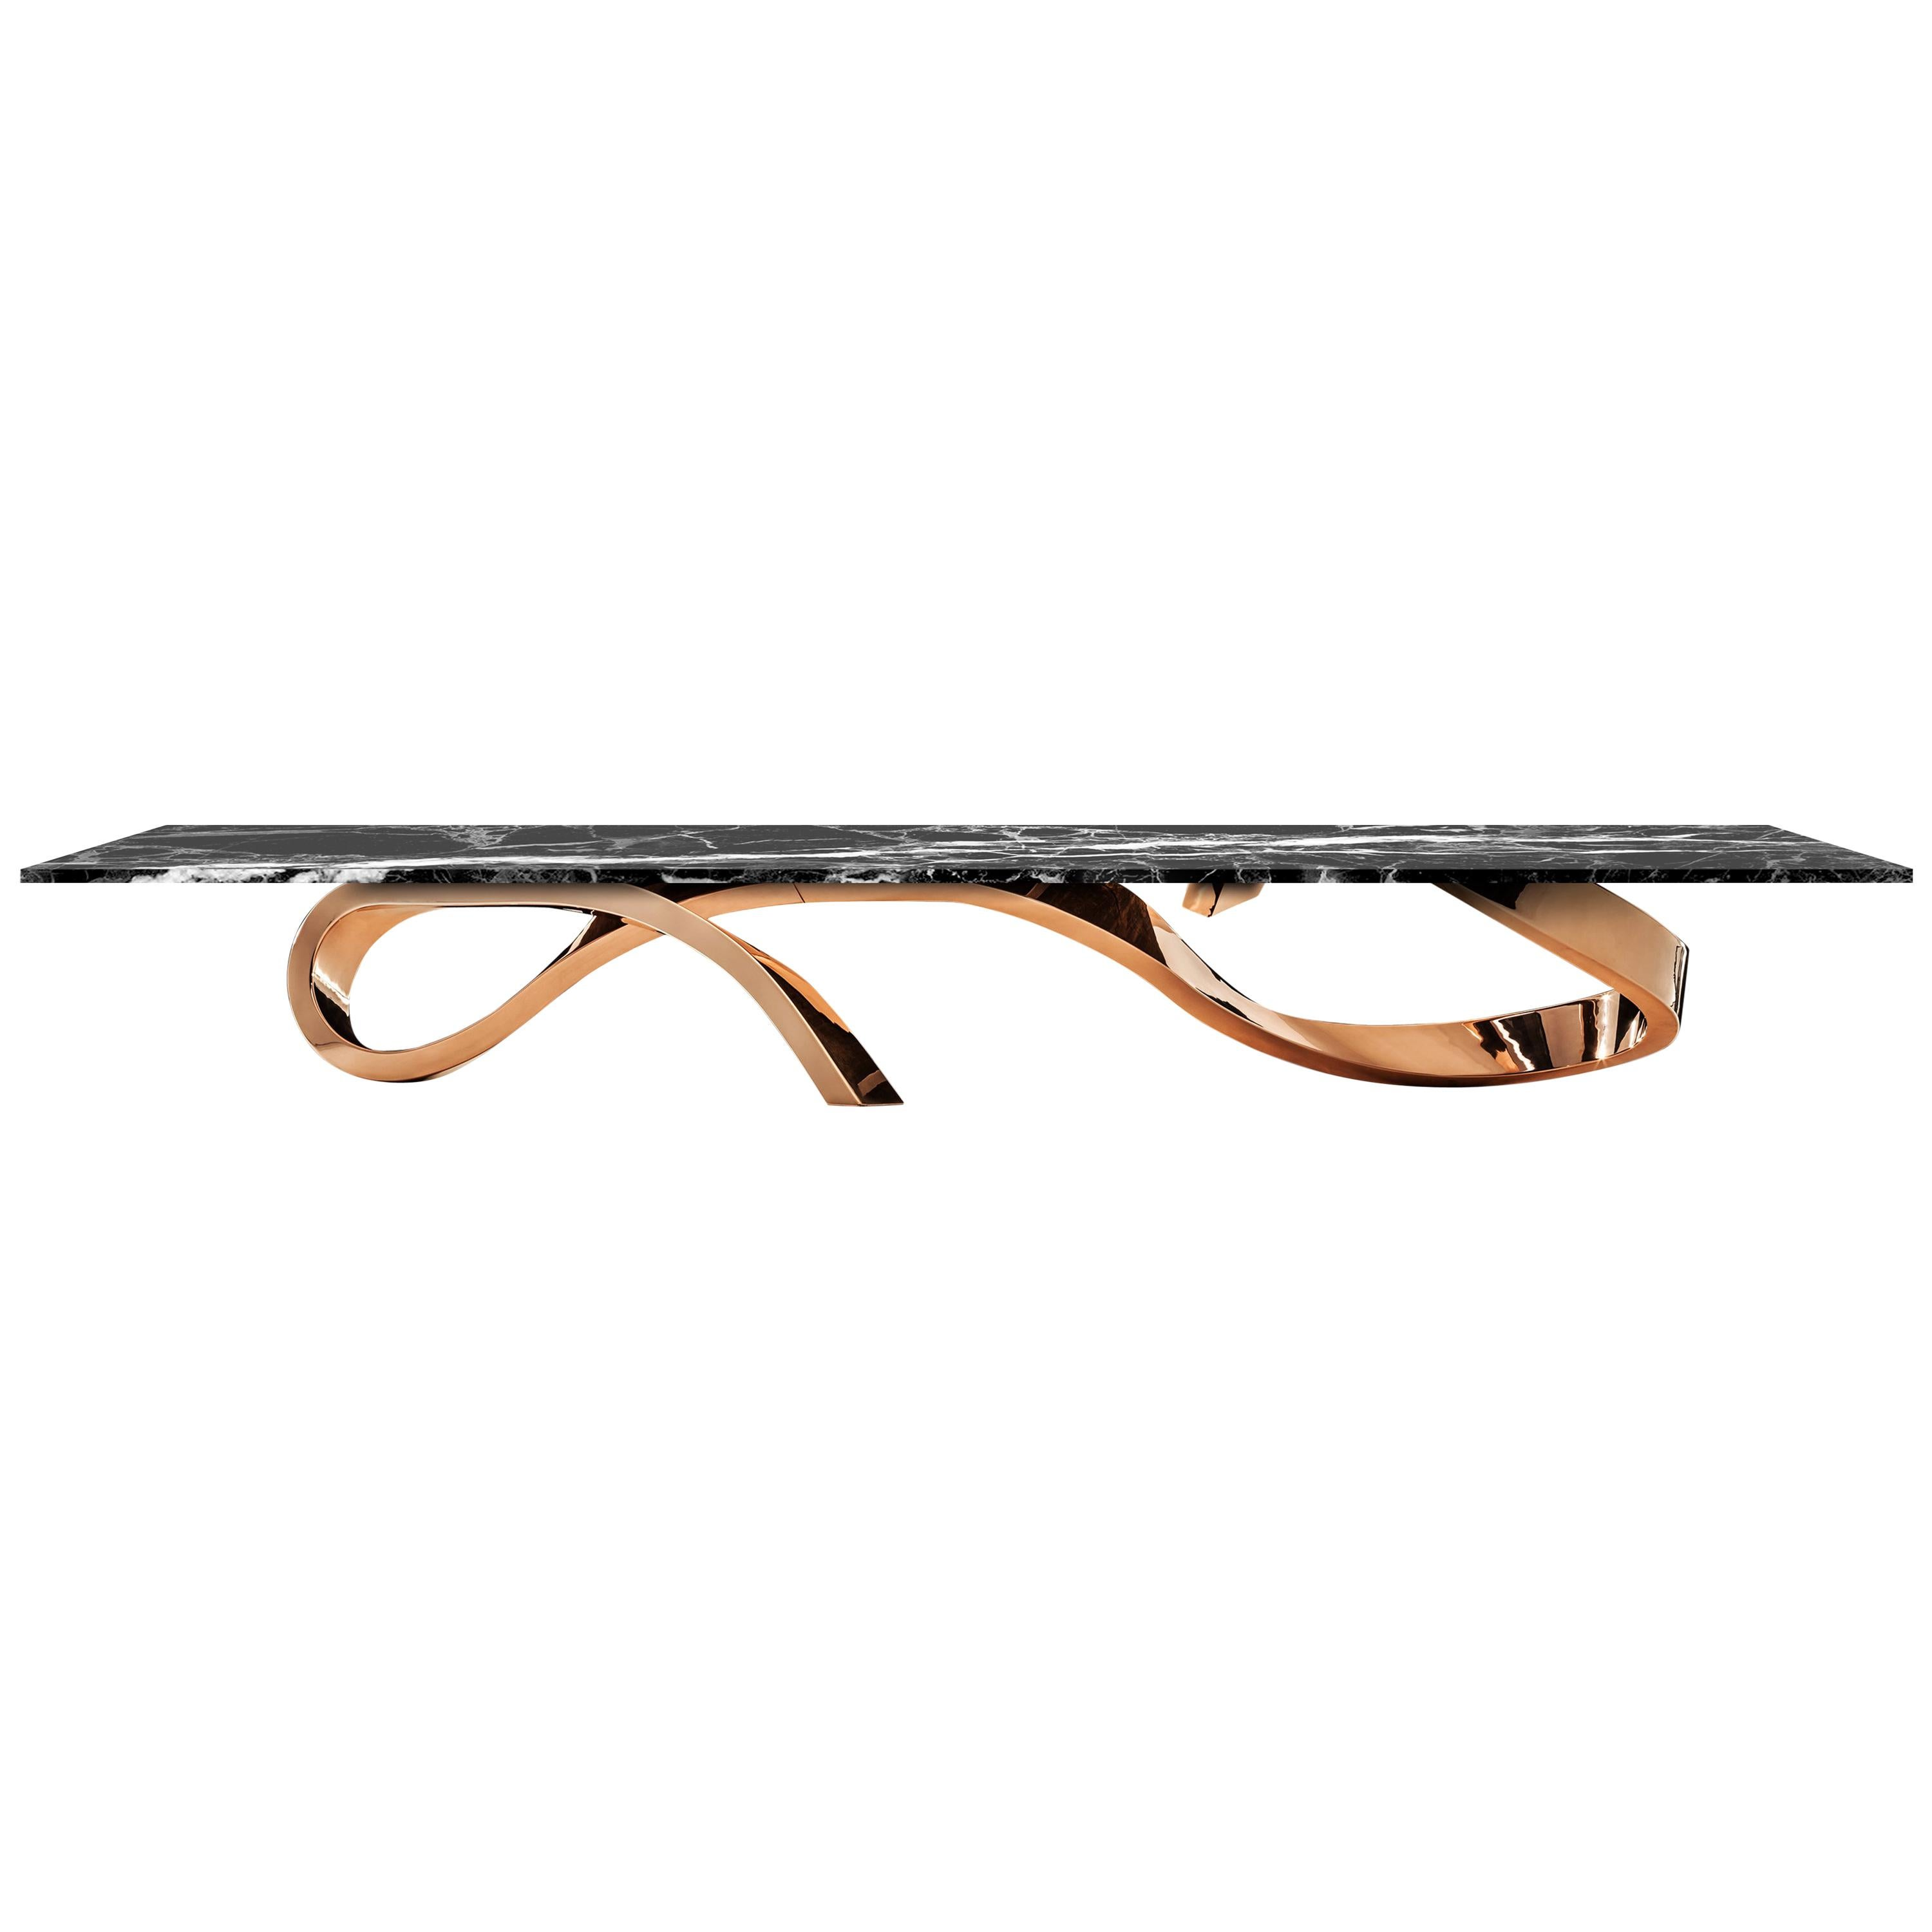 Contemporary Apate Coffee Table in Marble, Brass, Copper